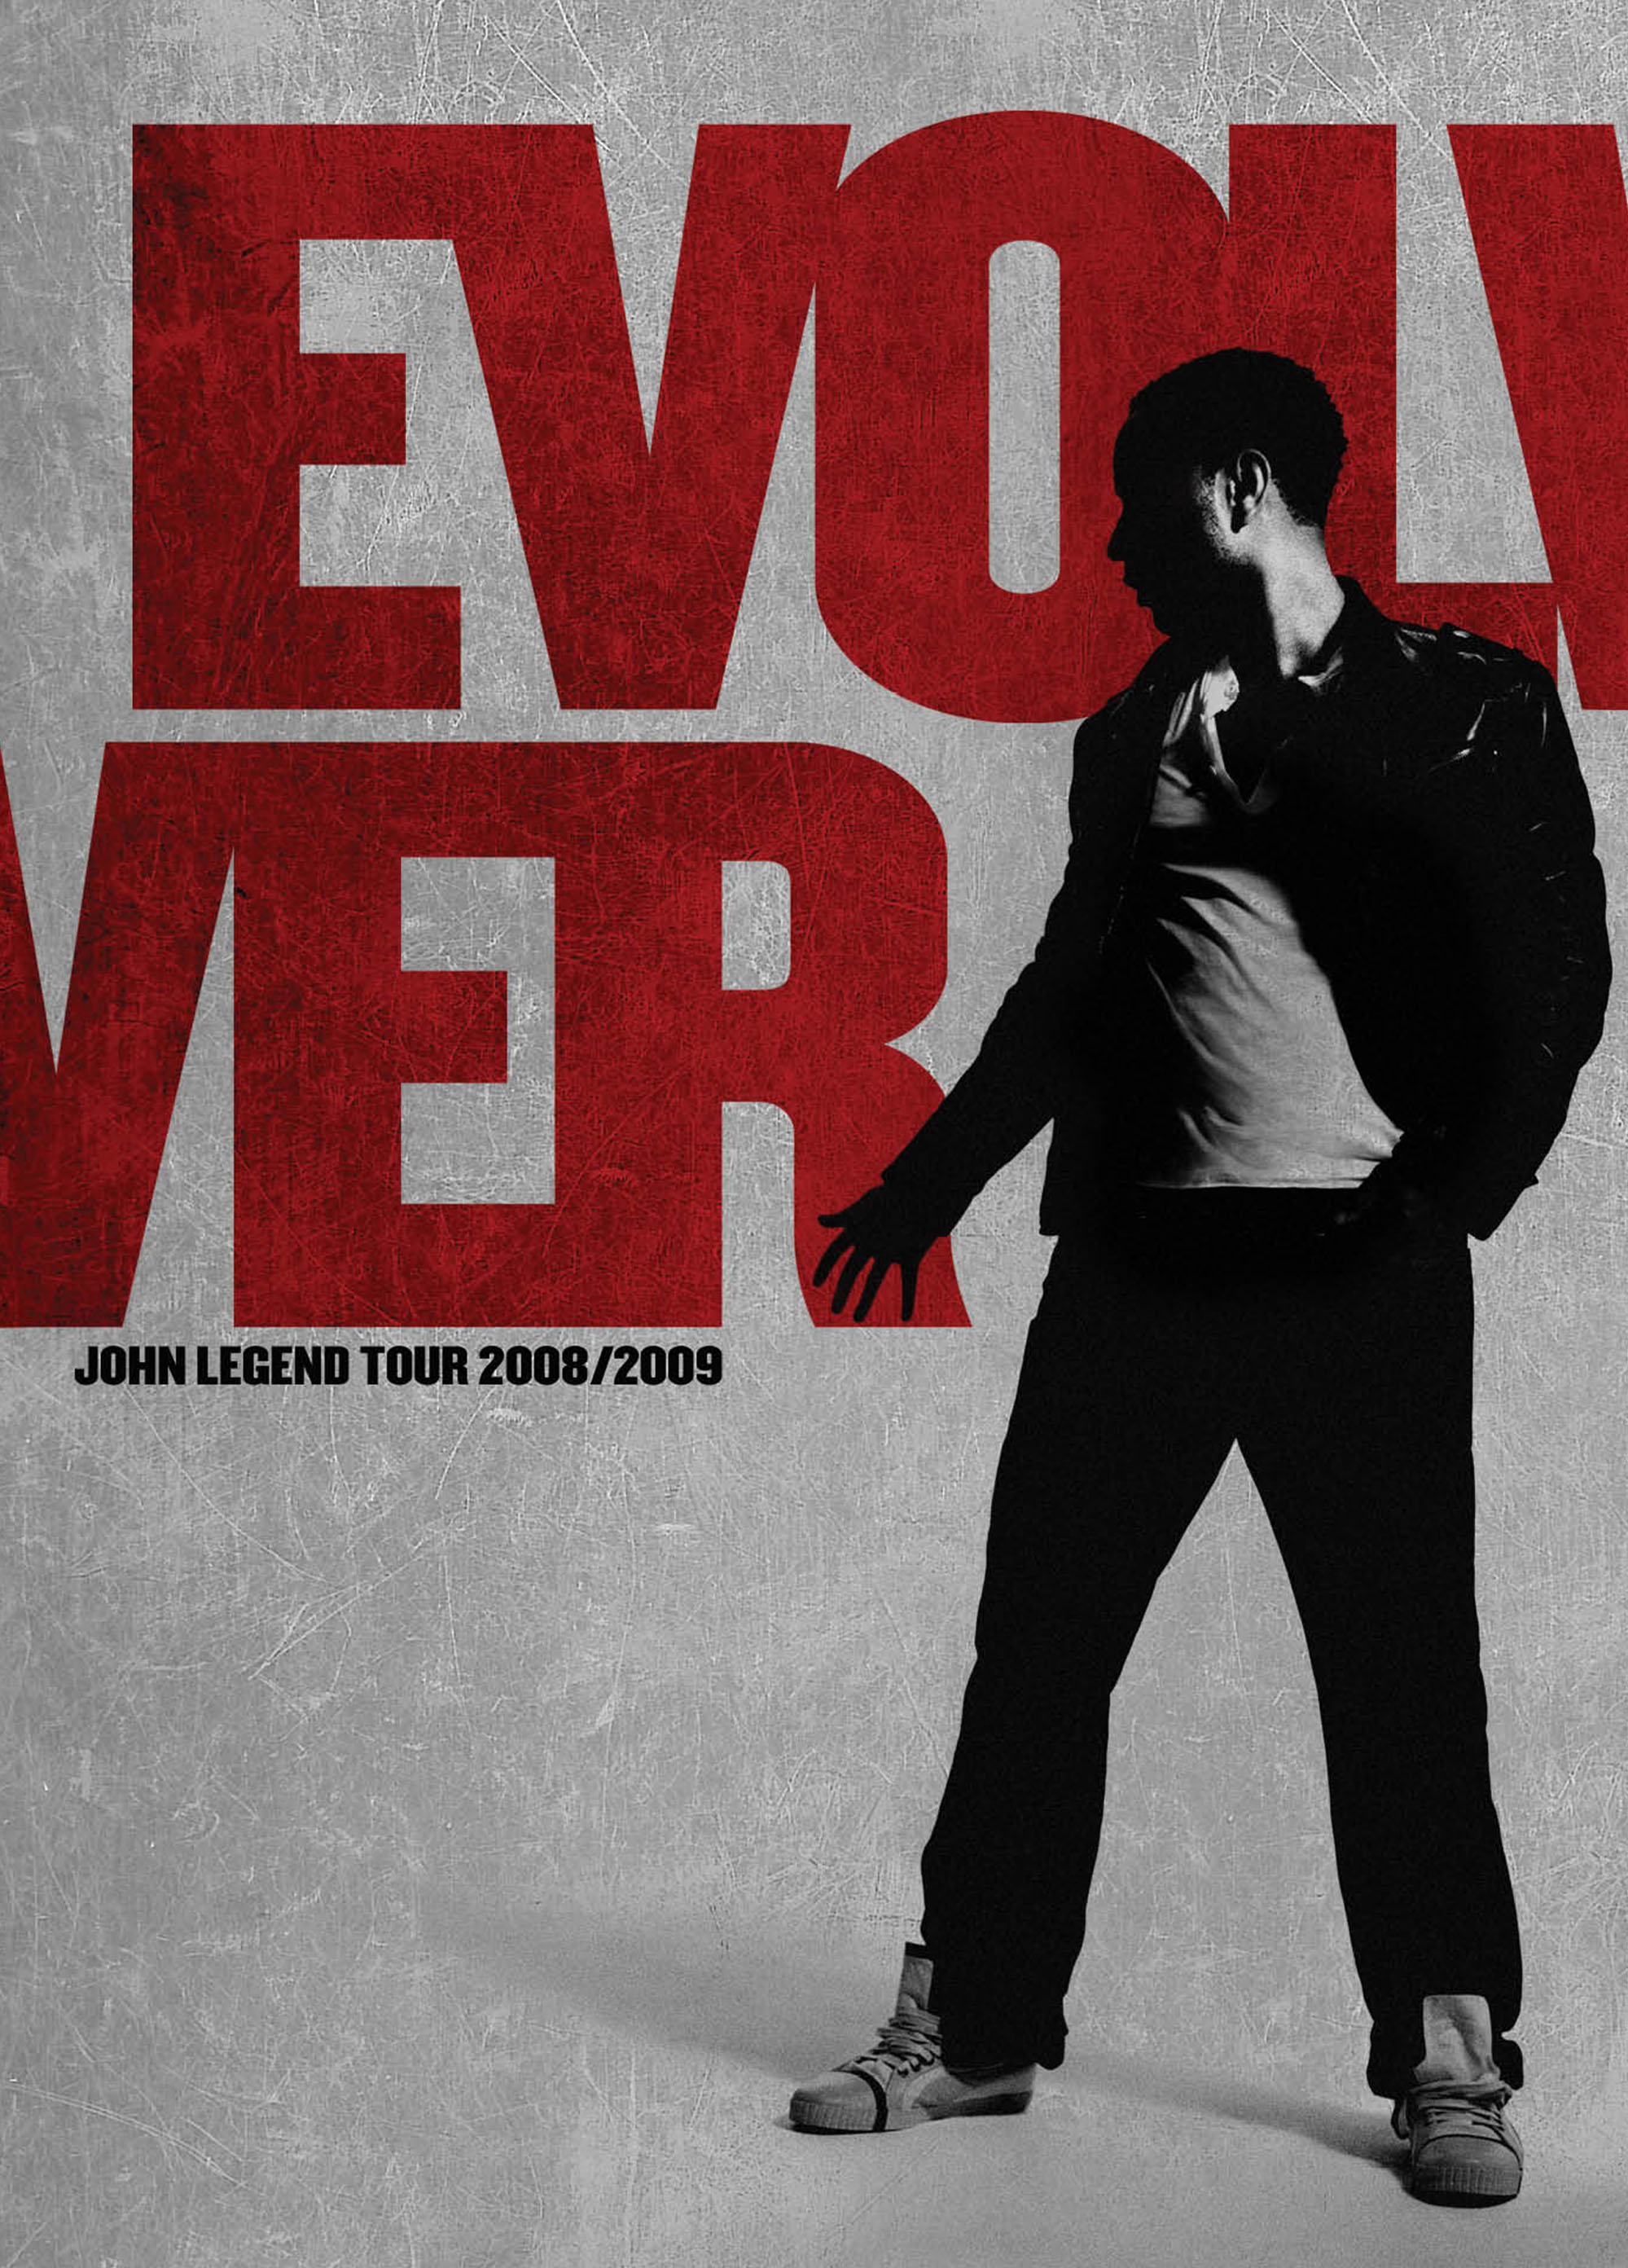 John Legend Evolver tour book | michelleholme.com